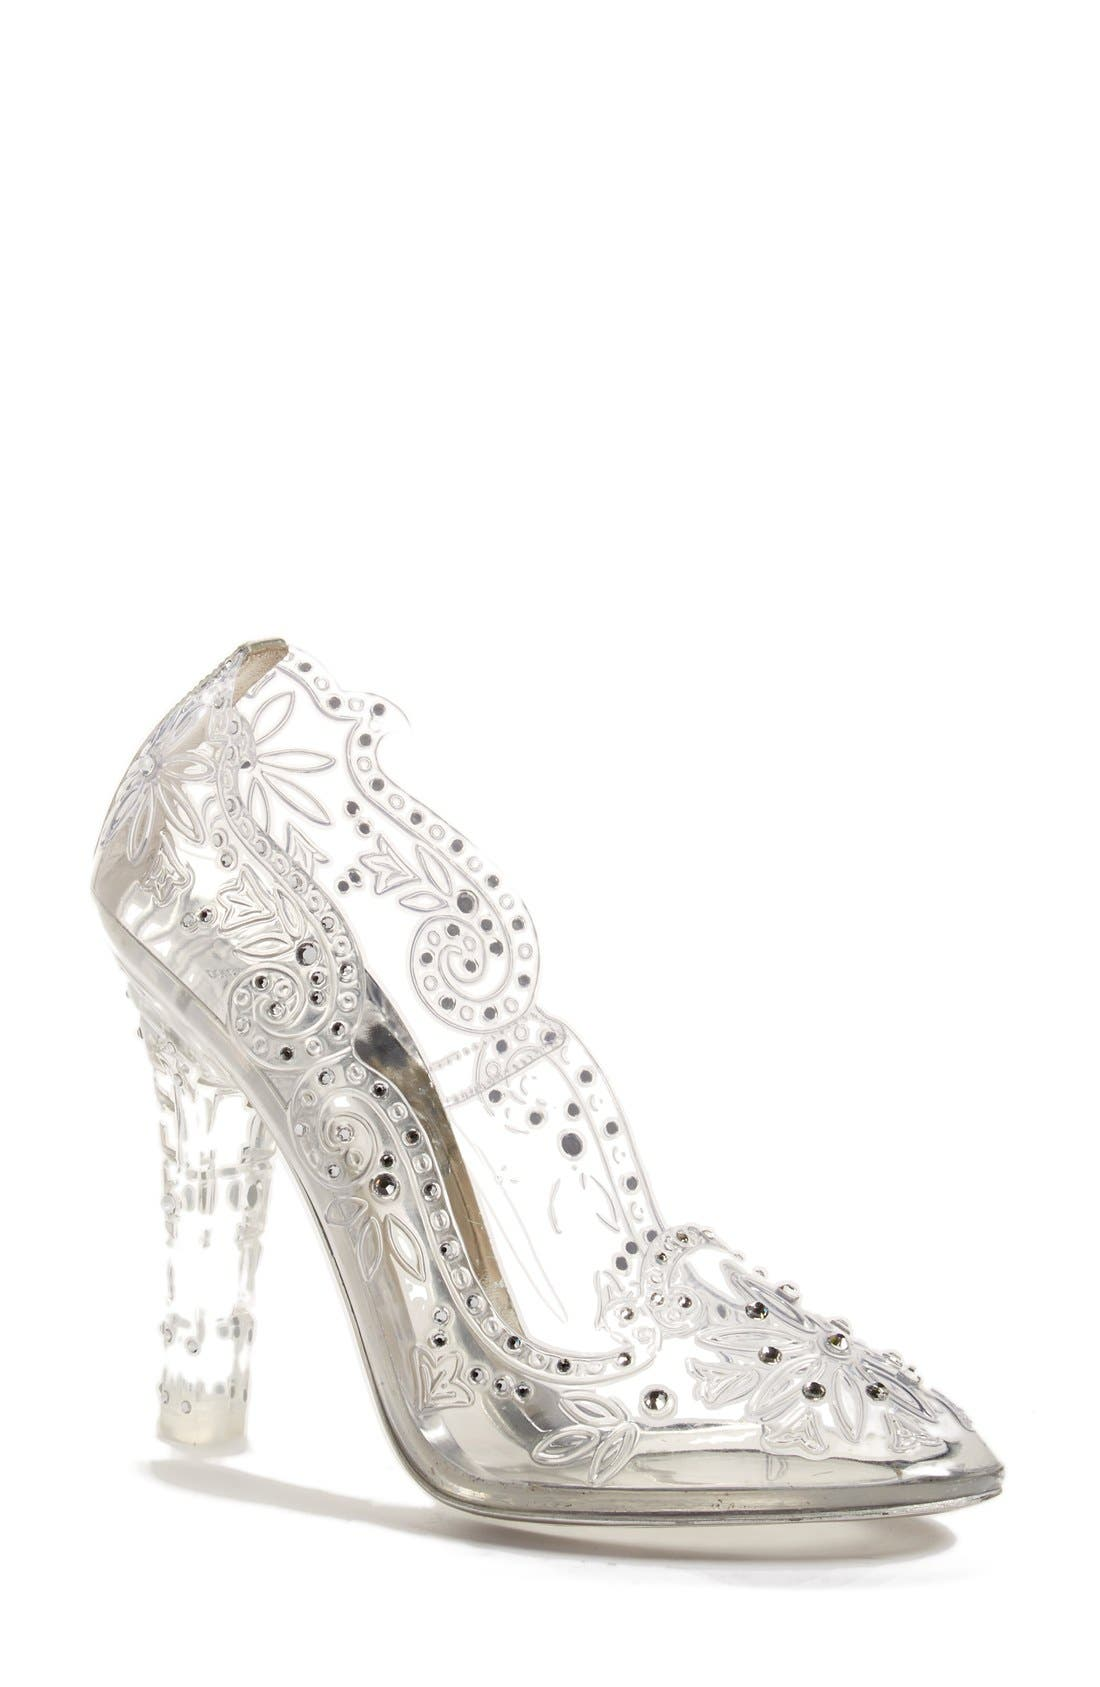 Alternate Image 1 Selected - Dolce&Gabbana 'Glass Slipper' Pump (Women)